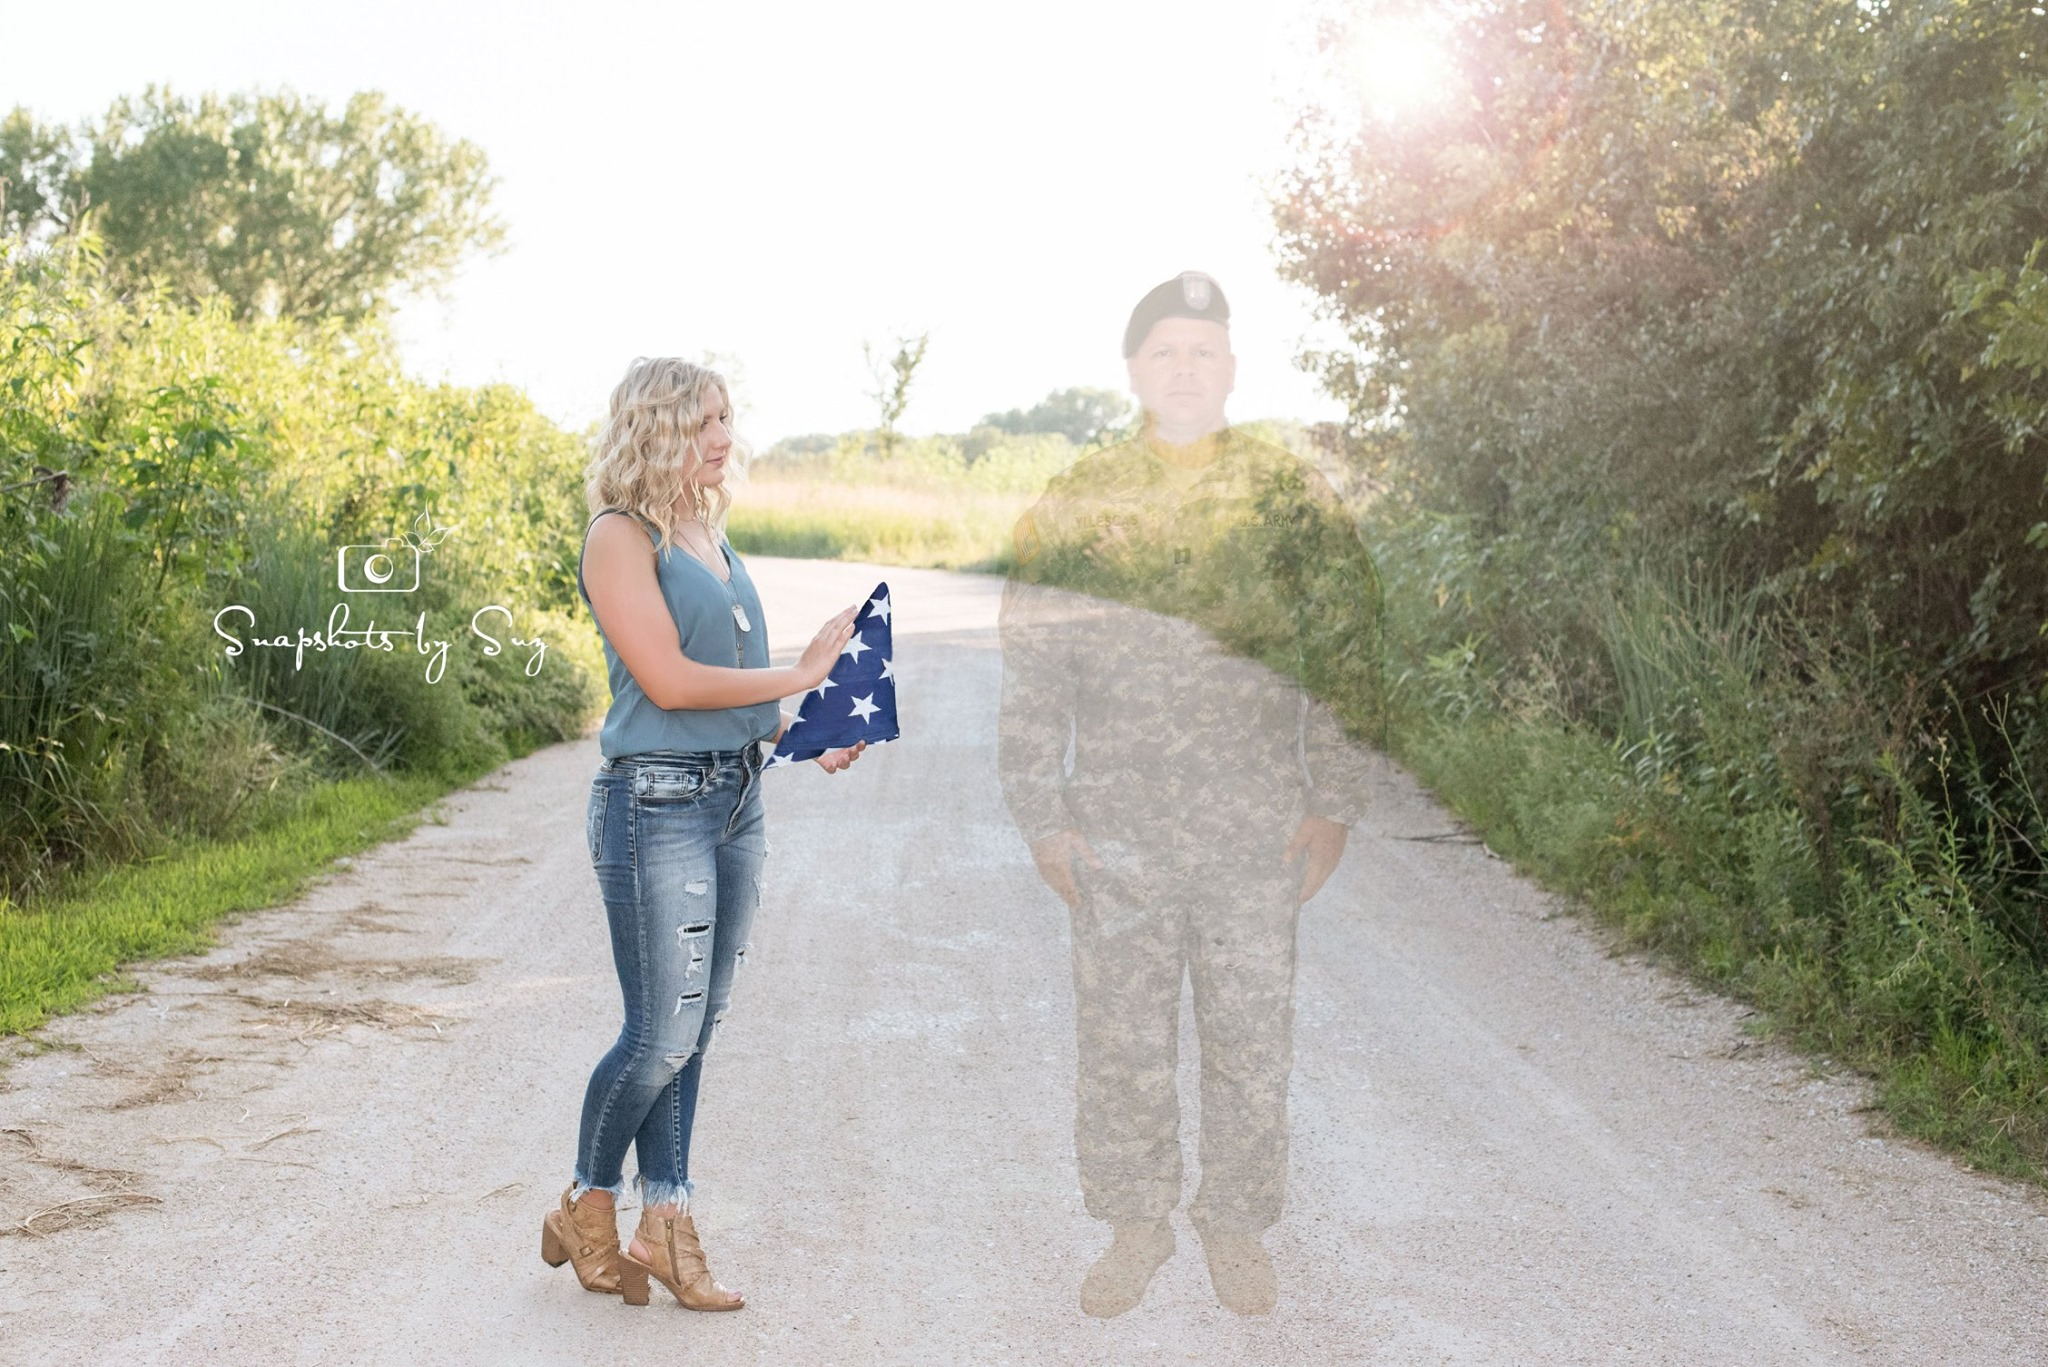 Photo from Snapshots by Suz of teen and fallen soldier dad